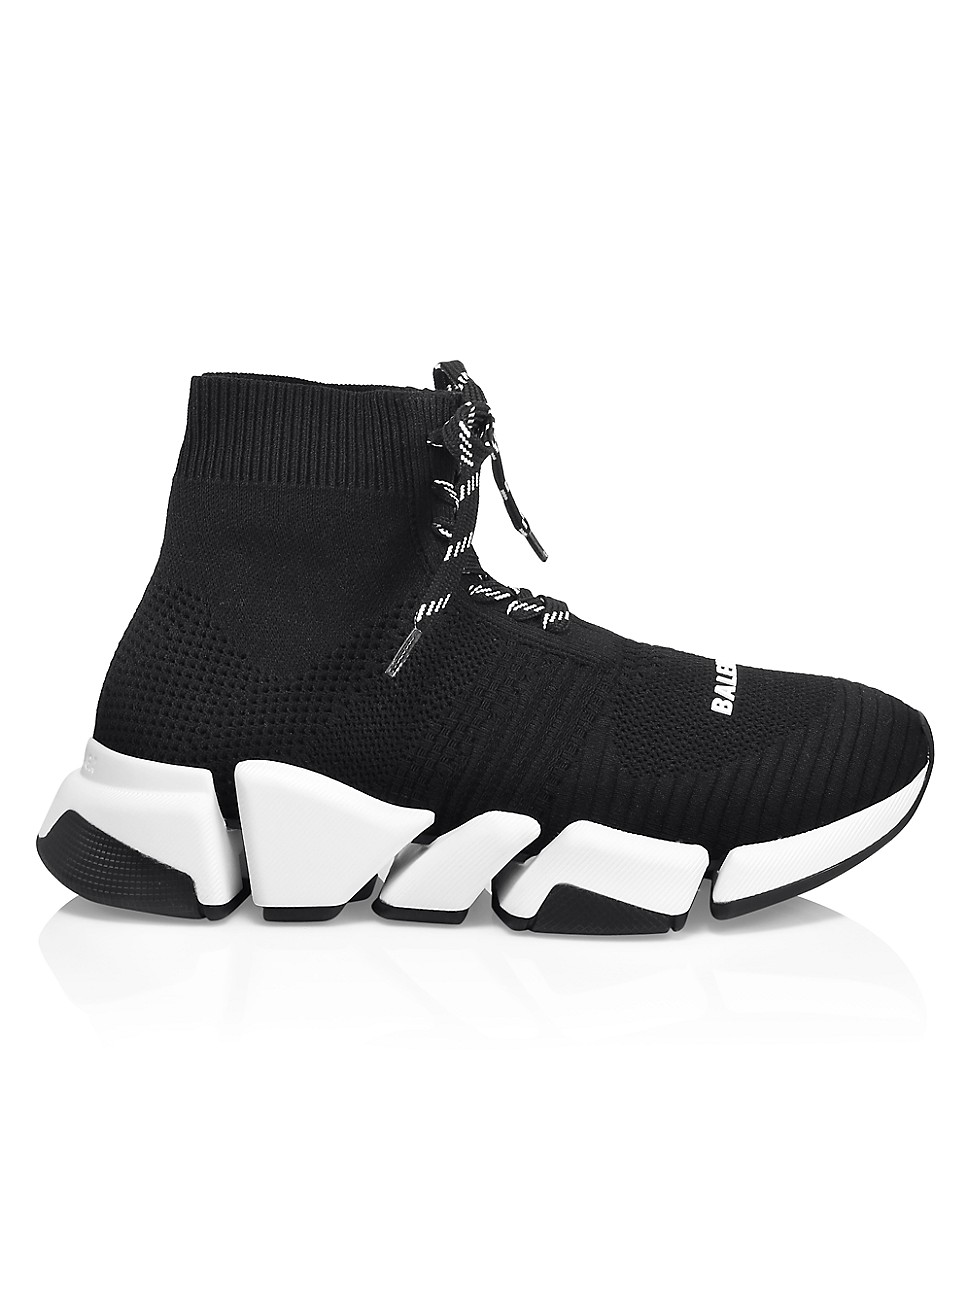 BALENCIAGA WOMEN'S SPEED 2.0 LACE-UP SNEAKERS